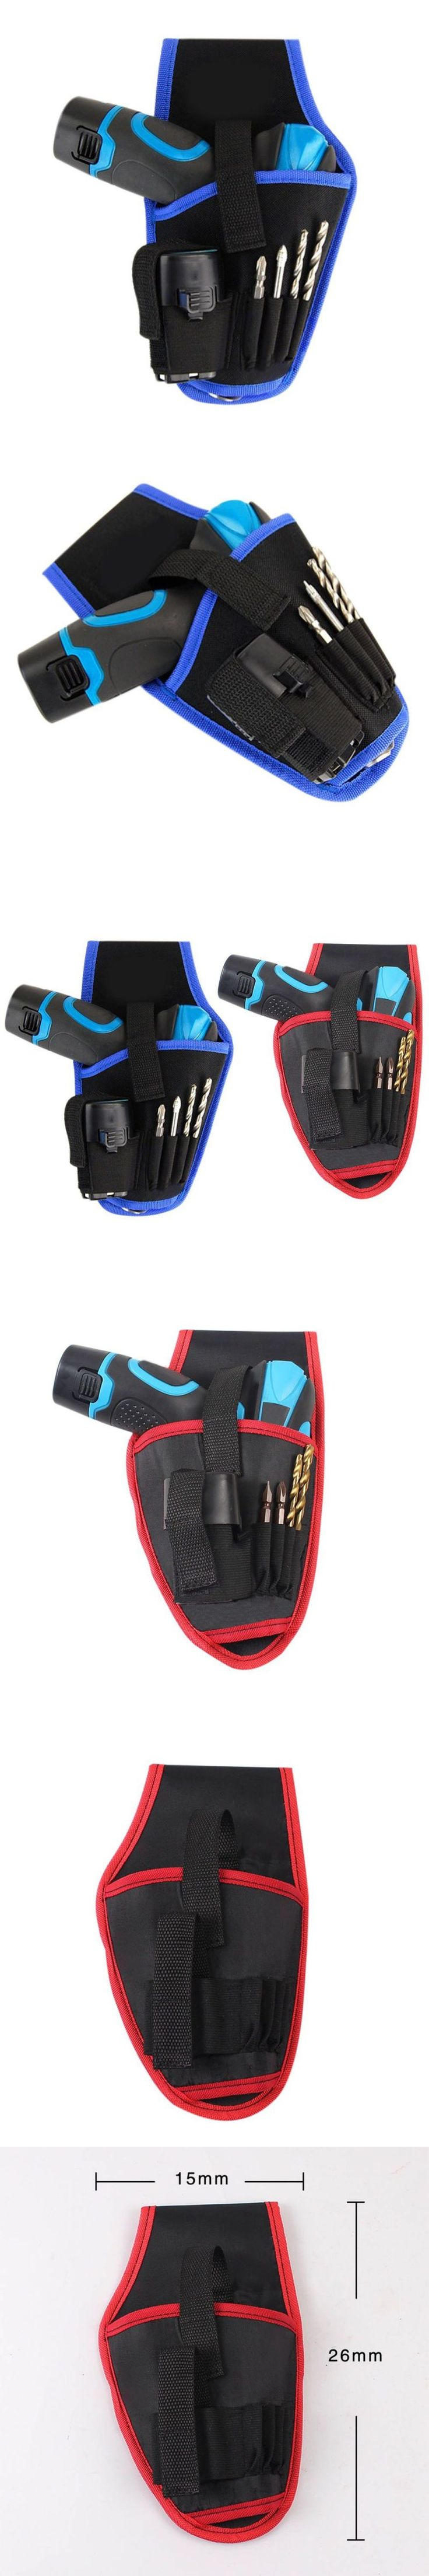 Drill Waist Tool Belt Bag Potable Drill Holder Cordless Tool Electric Drill Bag Red&Blue New Arrival